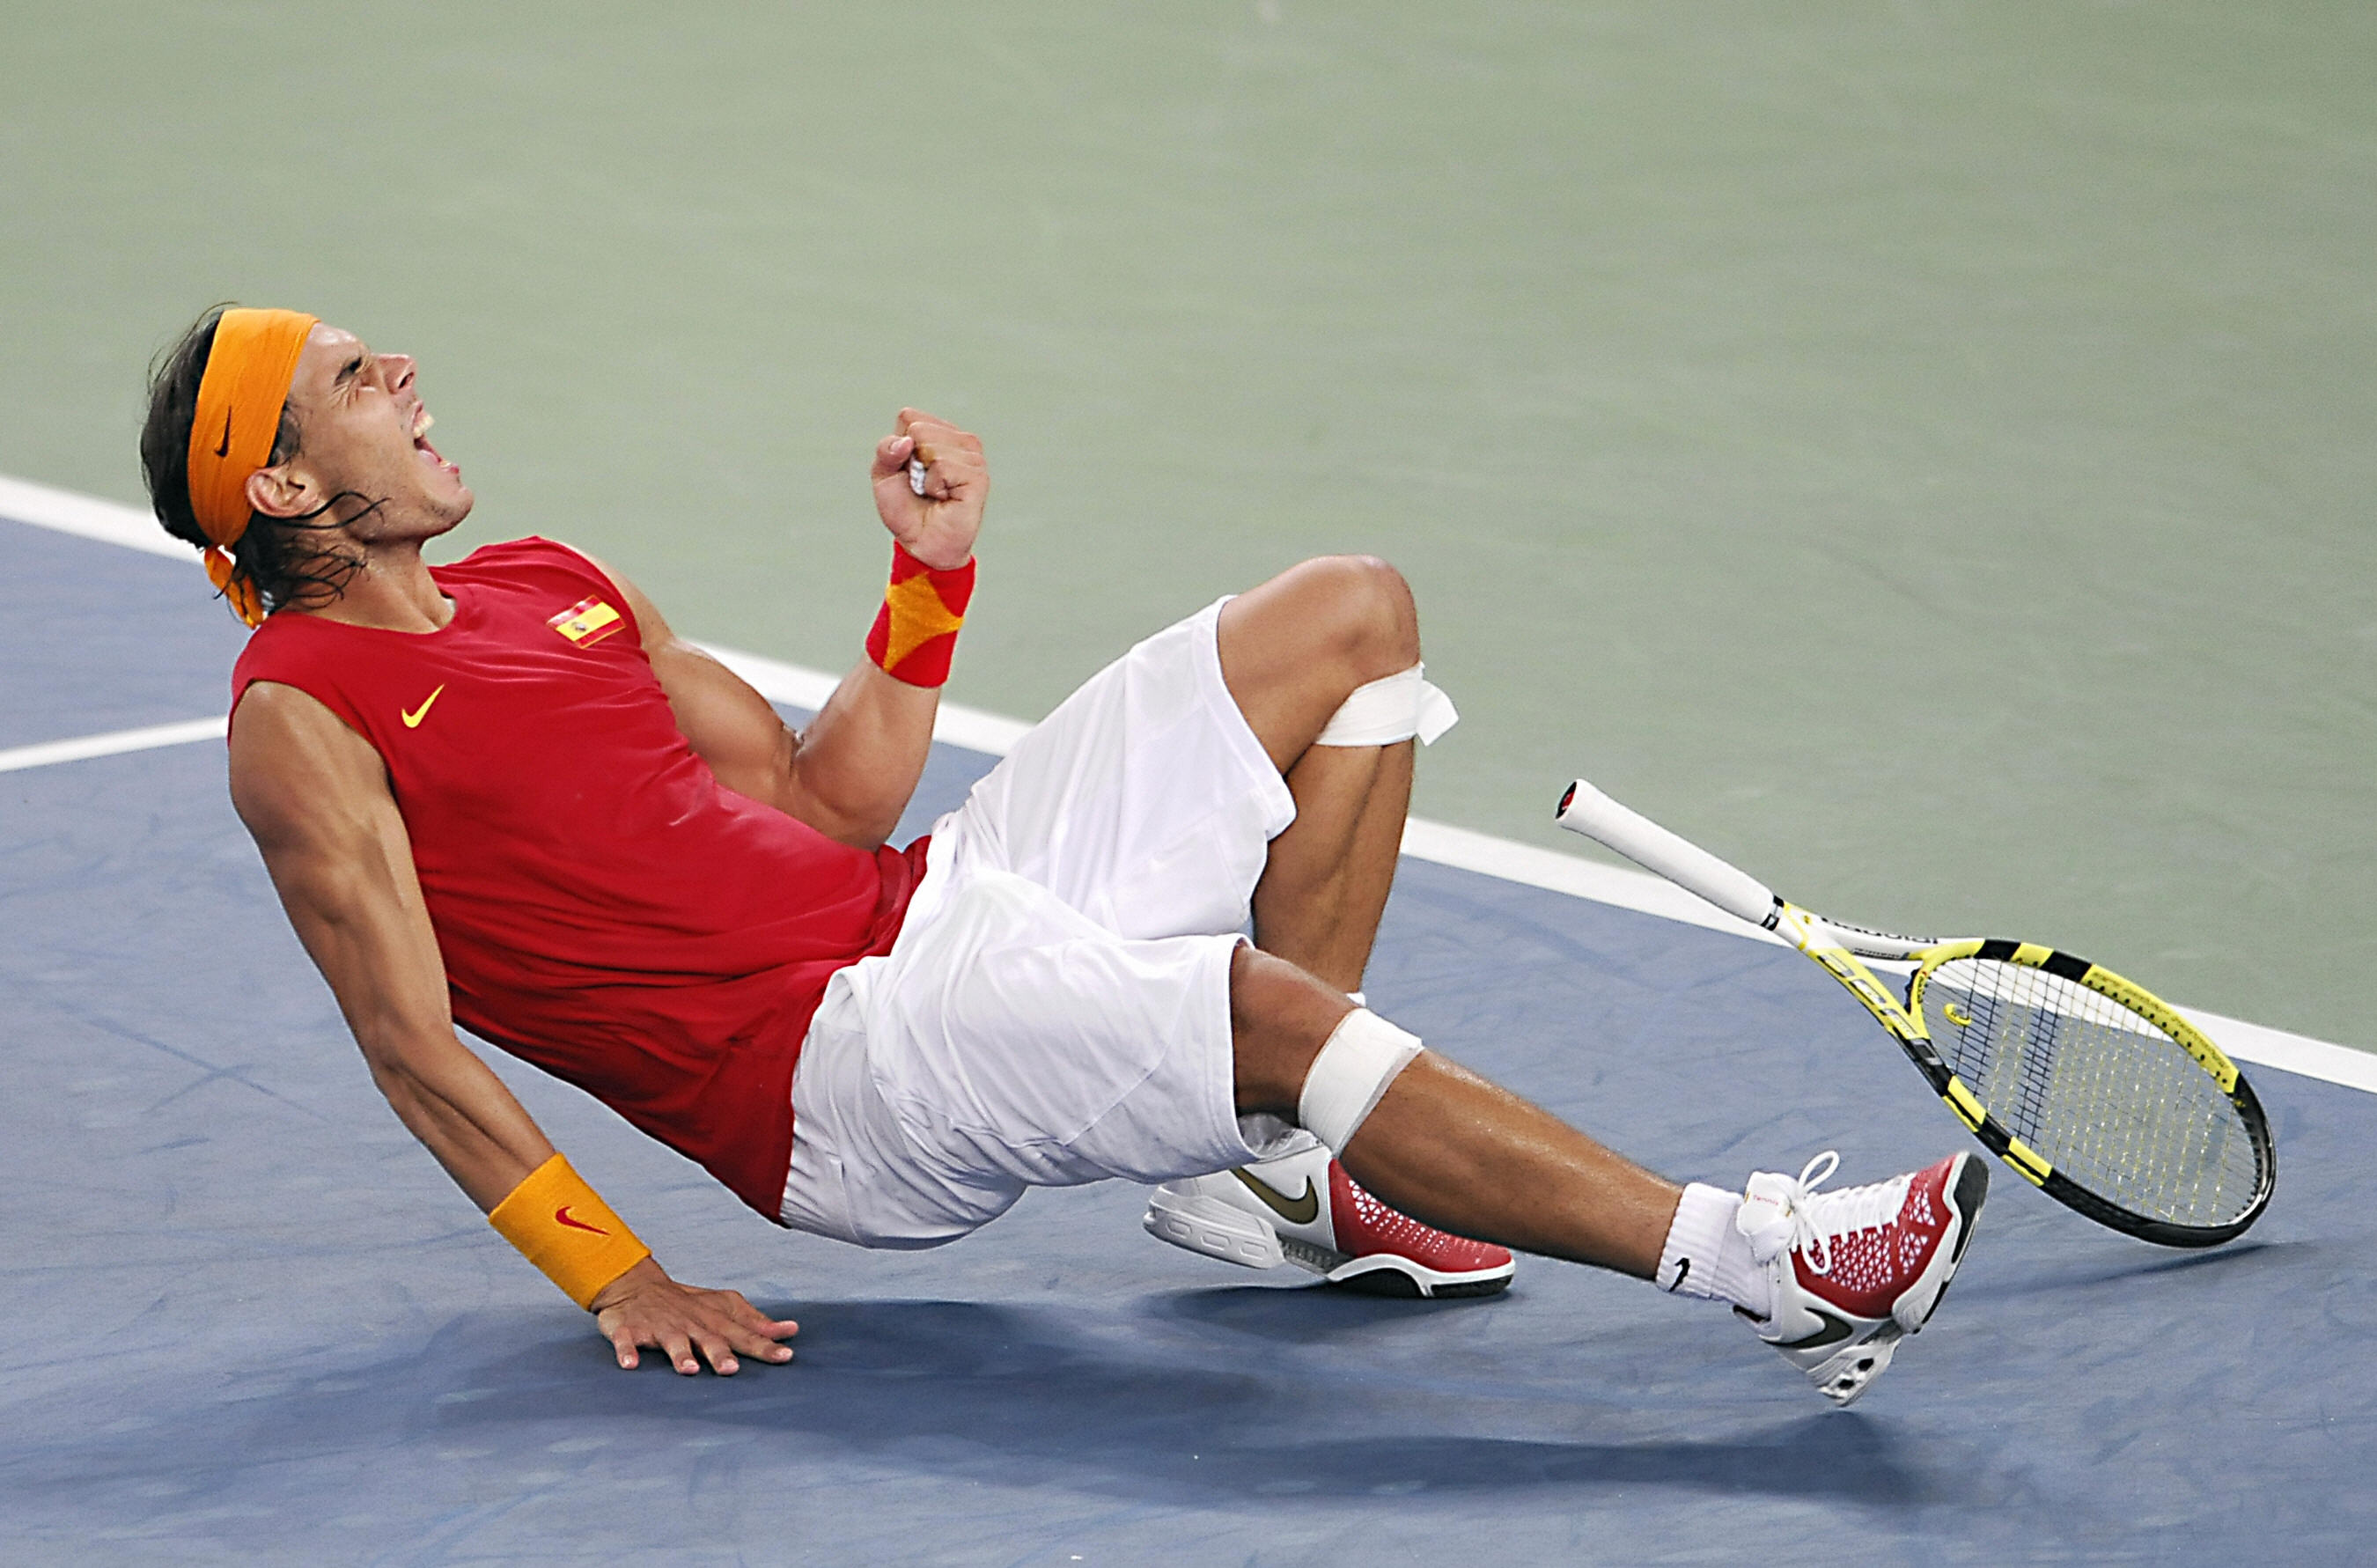 The orange headband and wristbands were odd, but Nadal's Spain kit was worthy of a gold medal in Beijing.